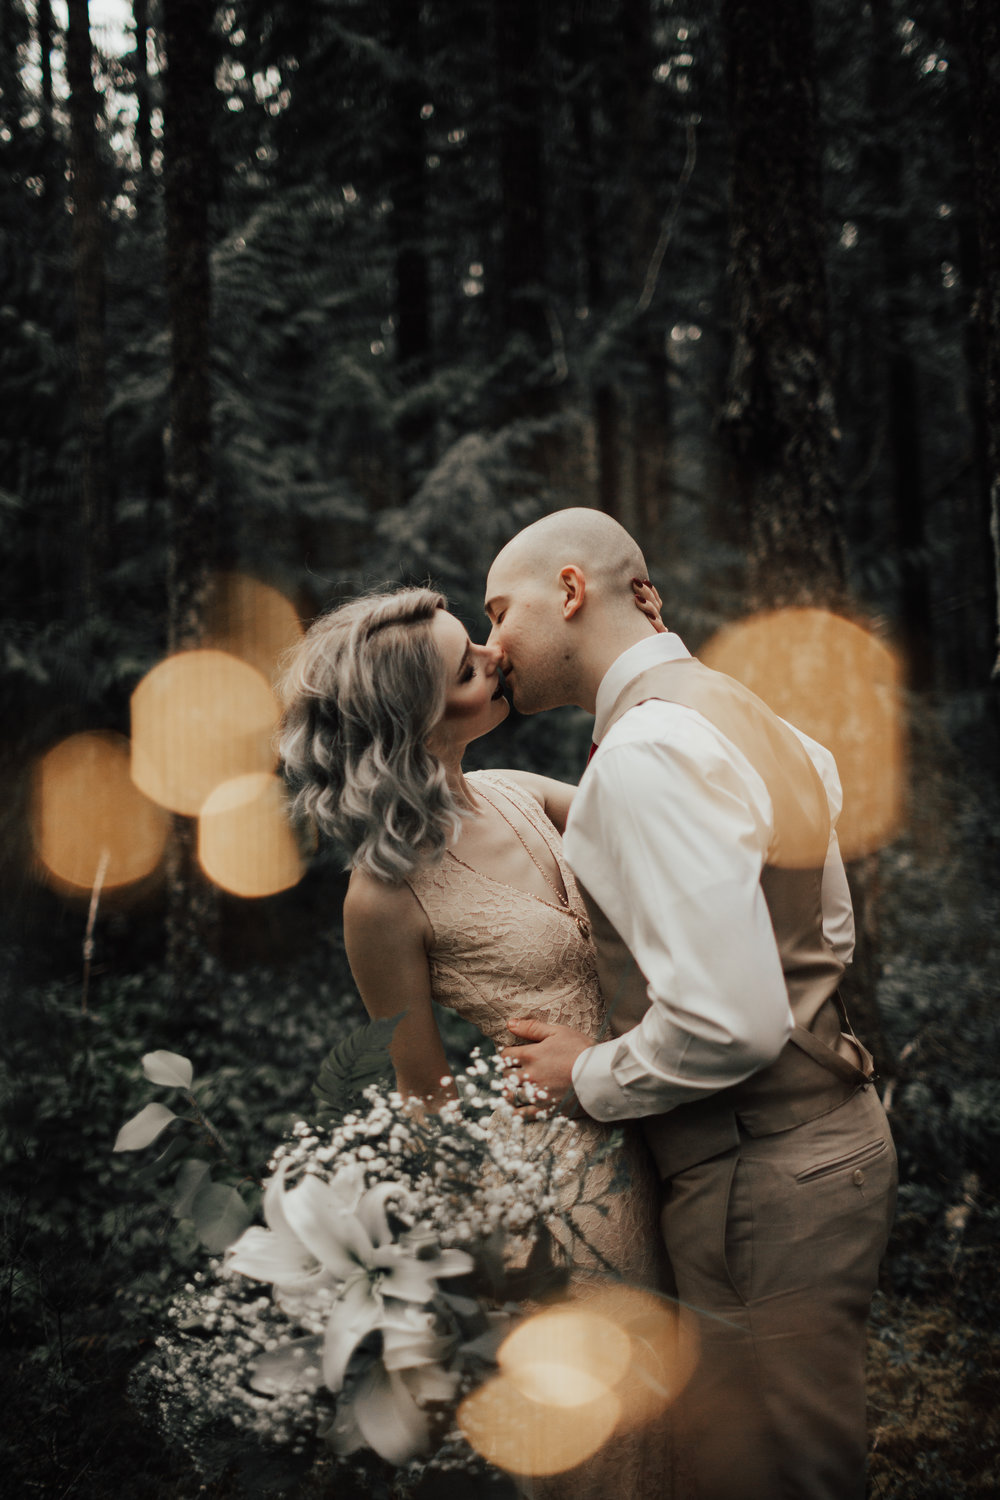 Port Angeles-PNW-Sequim-Portrait-wedding-elopement-photographer-kayladawnphoto-kayla dawn photography-olympic peninsula-portraiture74.jpg